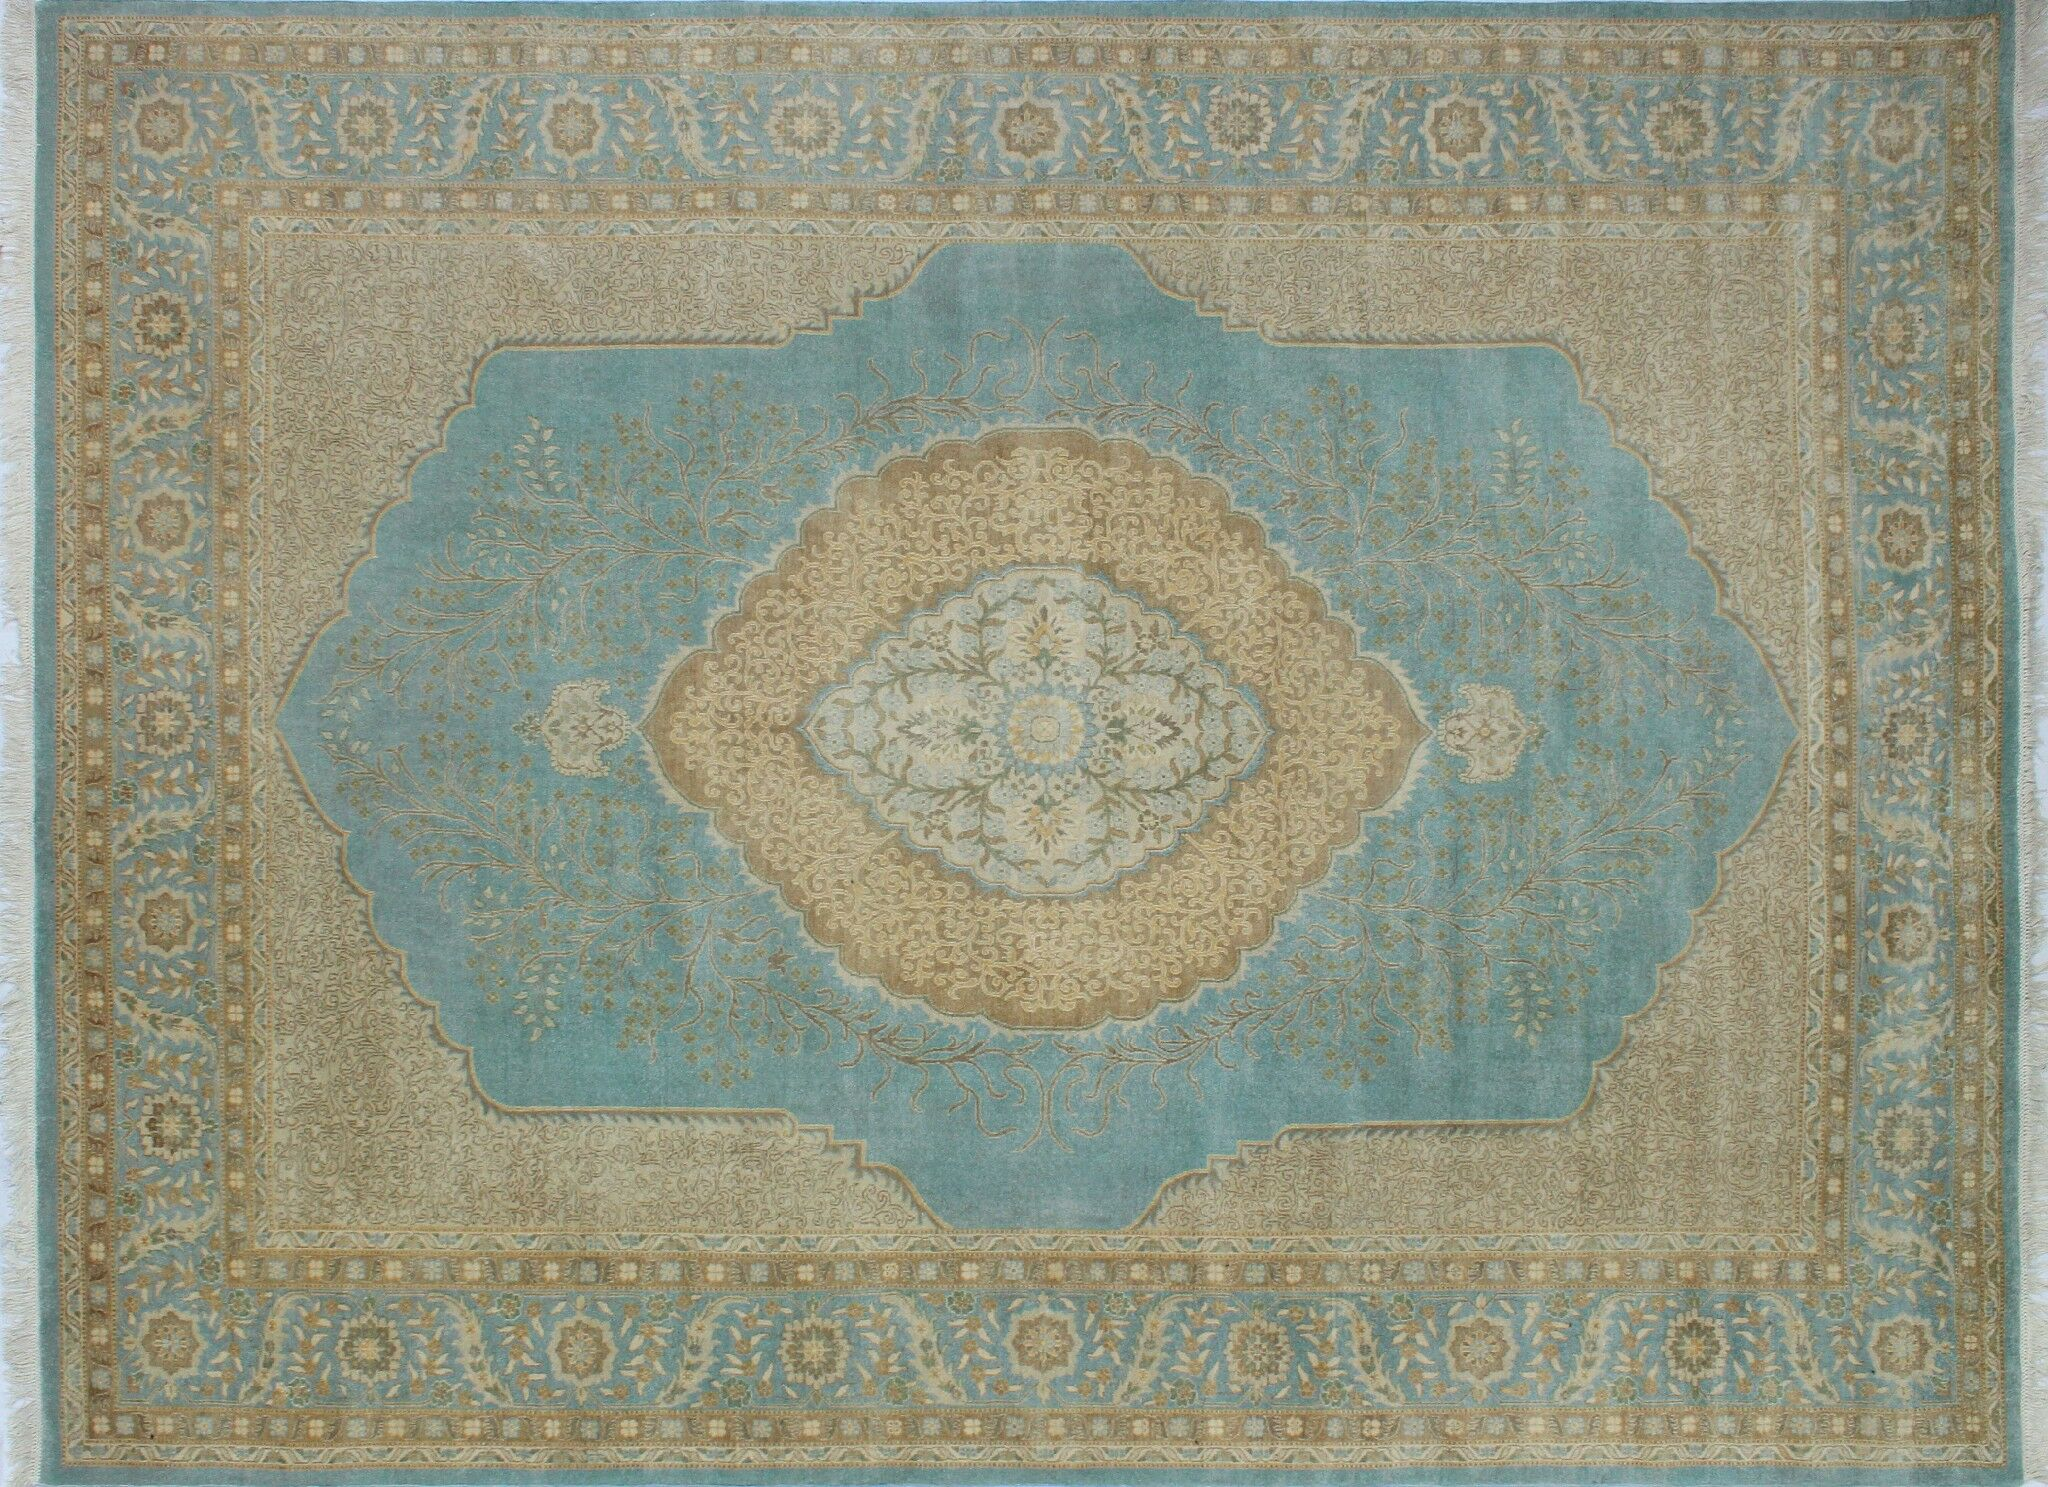 Branner Hand Knotted Wool Light Blue Area Rug Rug Size: Rectangle 9' x 11'10